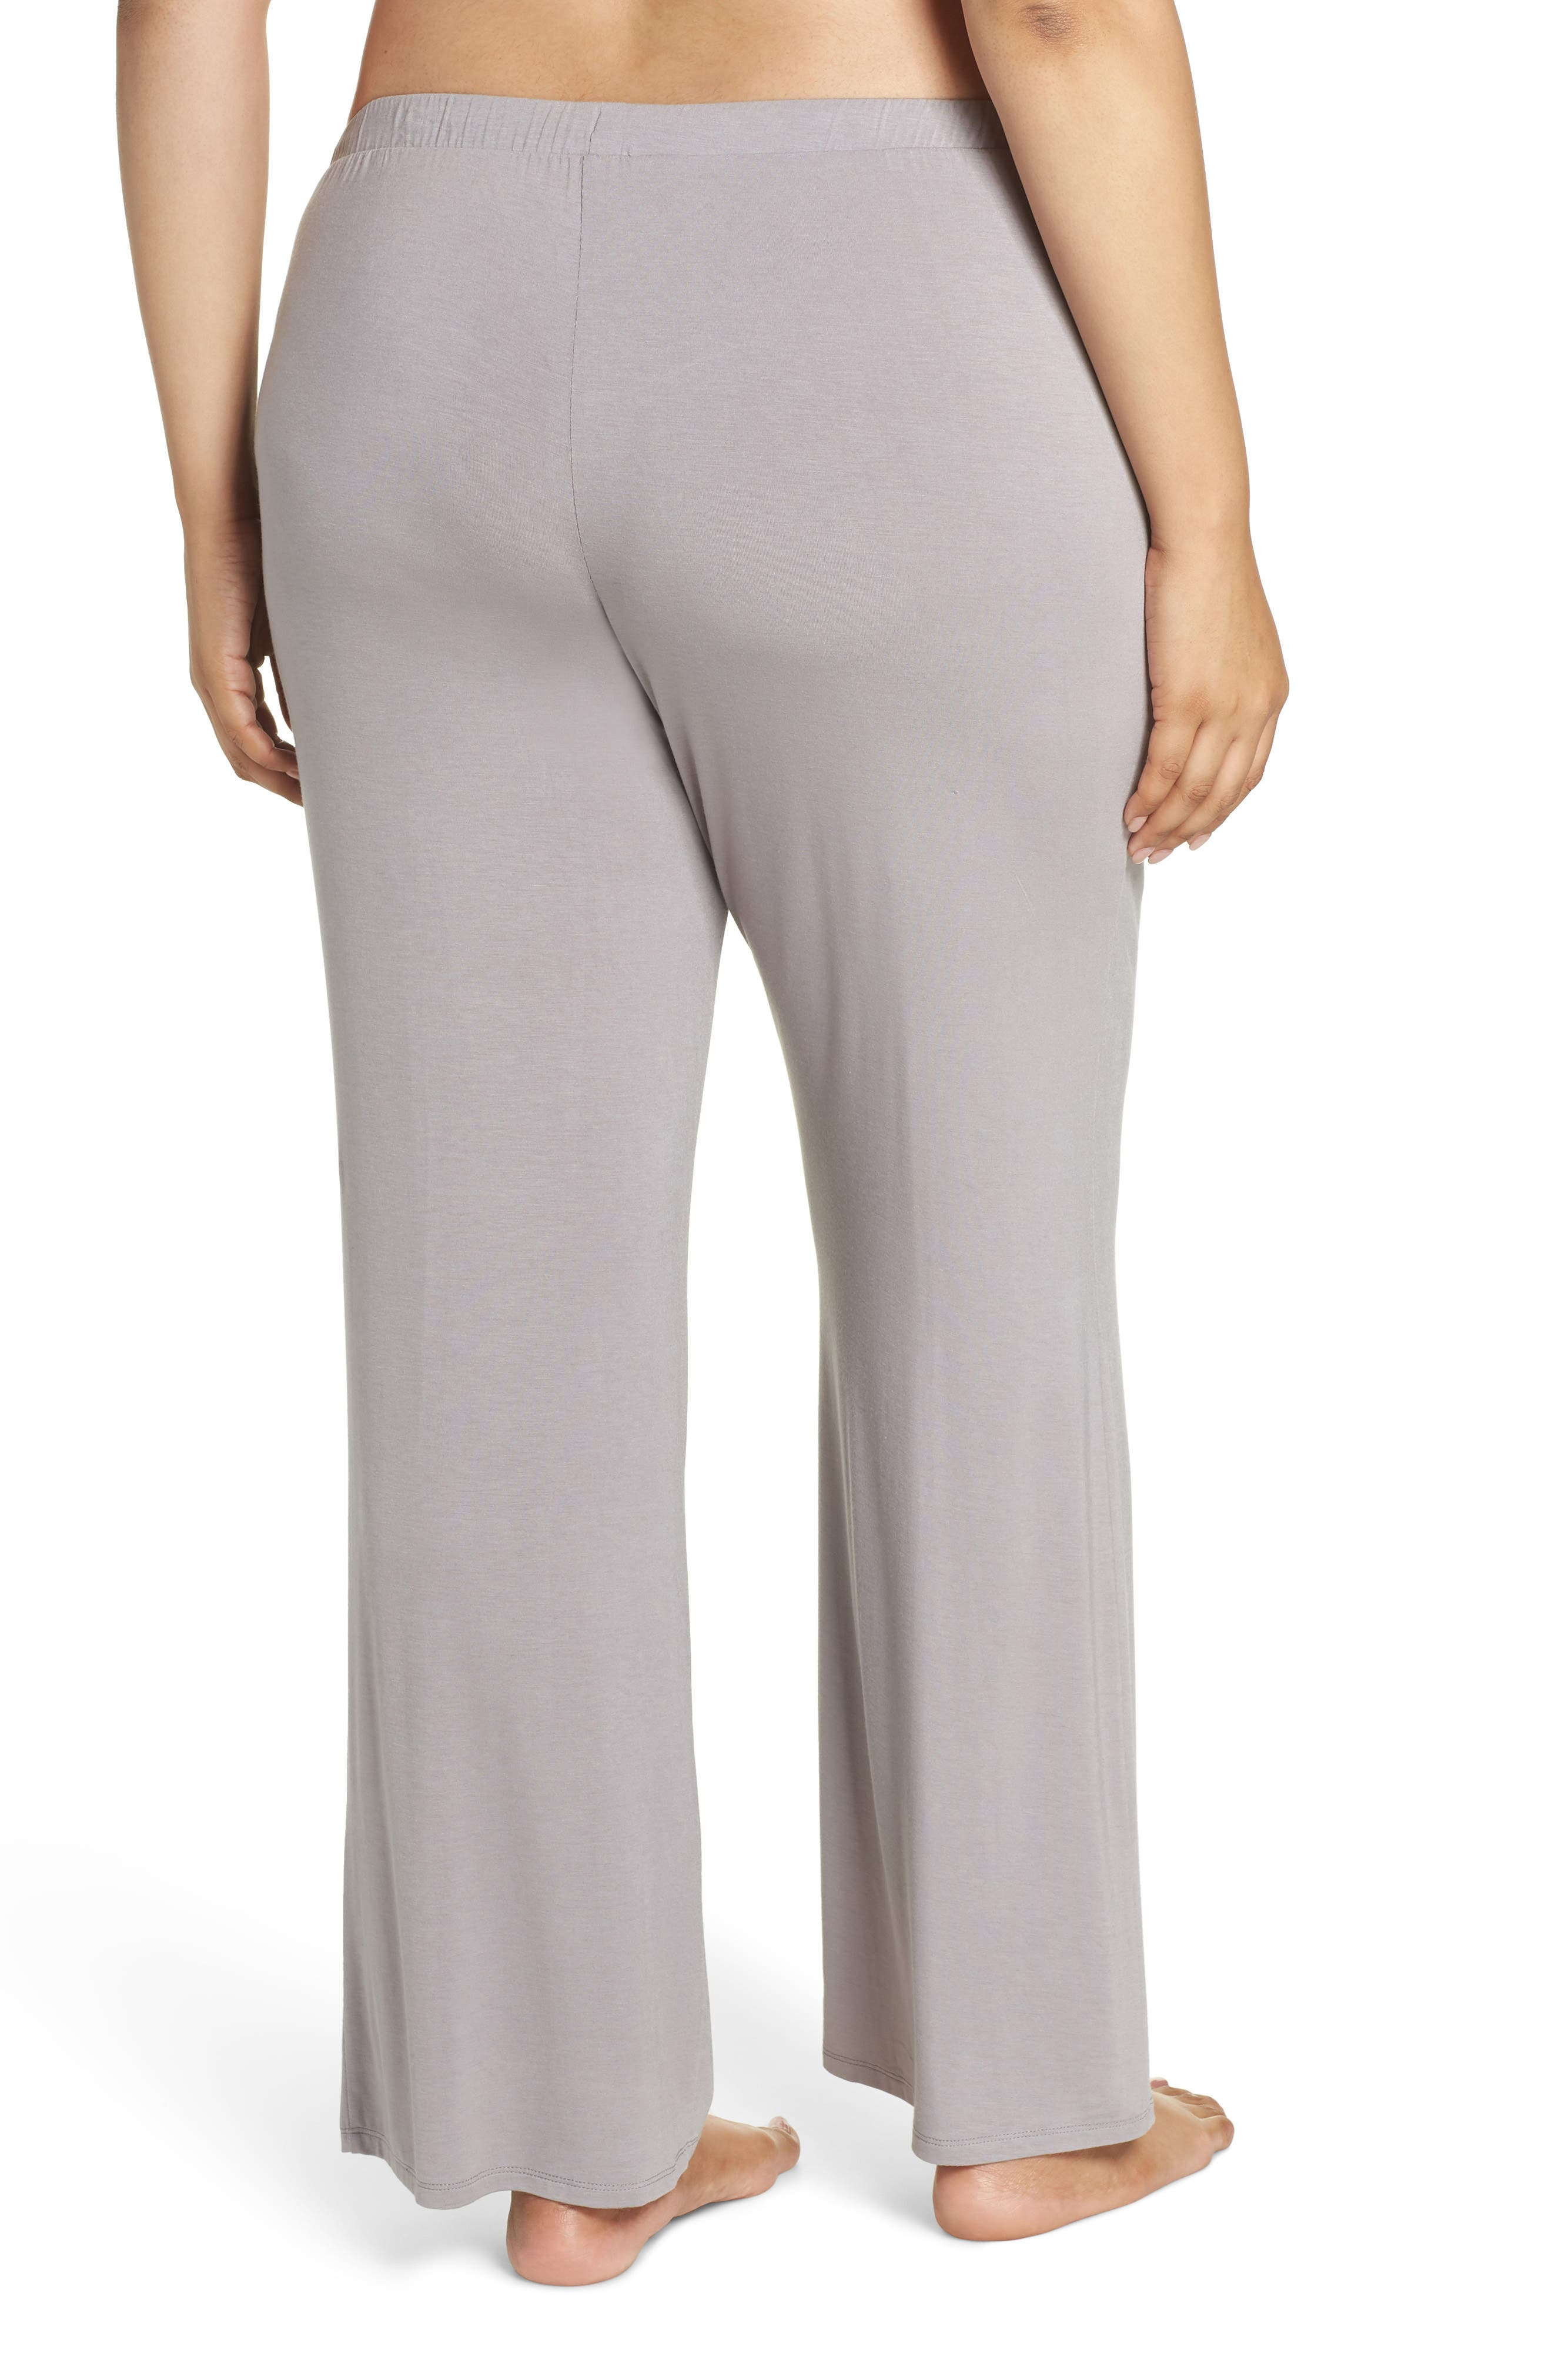 Breathe Lounge Pants,                             Alternate thumbnail 2, color,                             GREY GULL